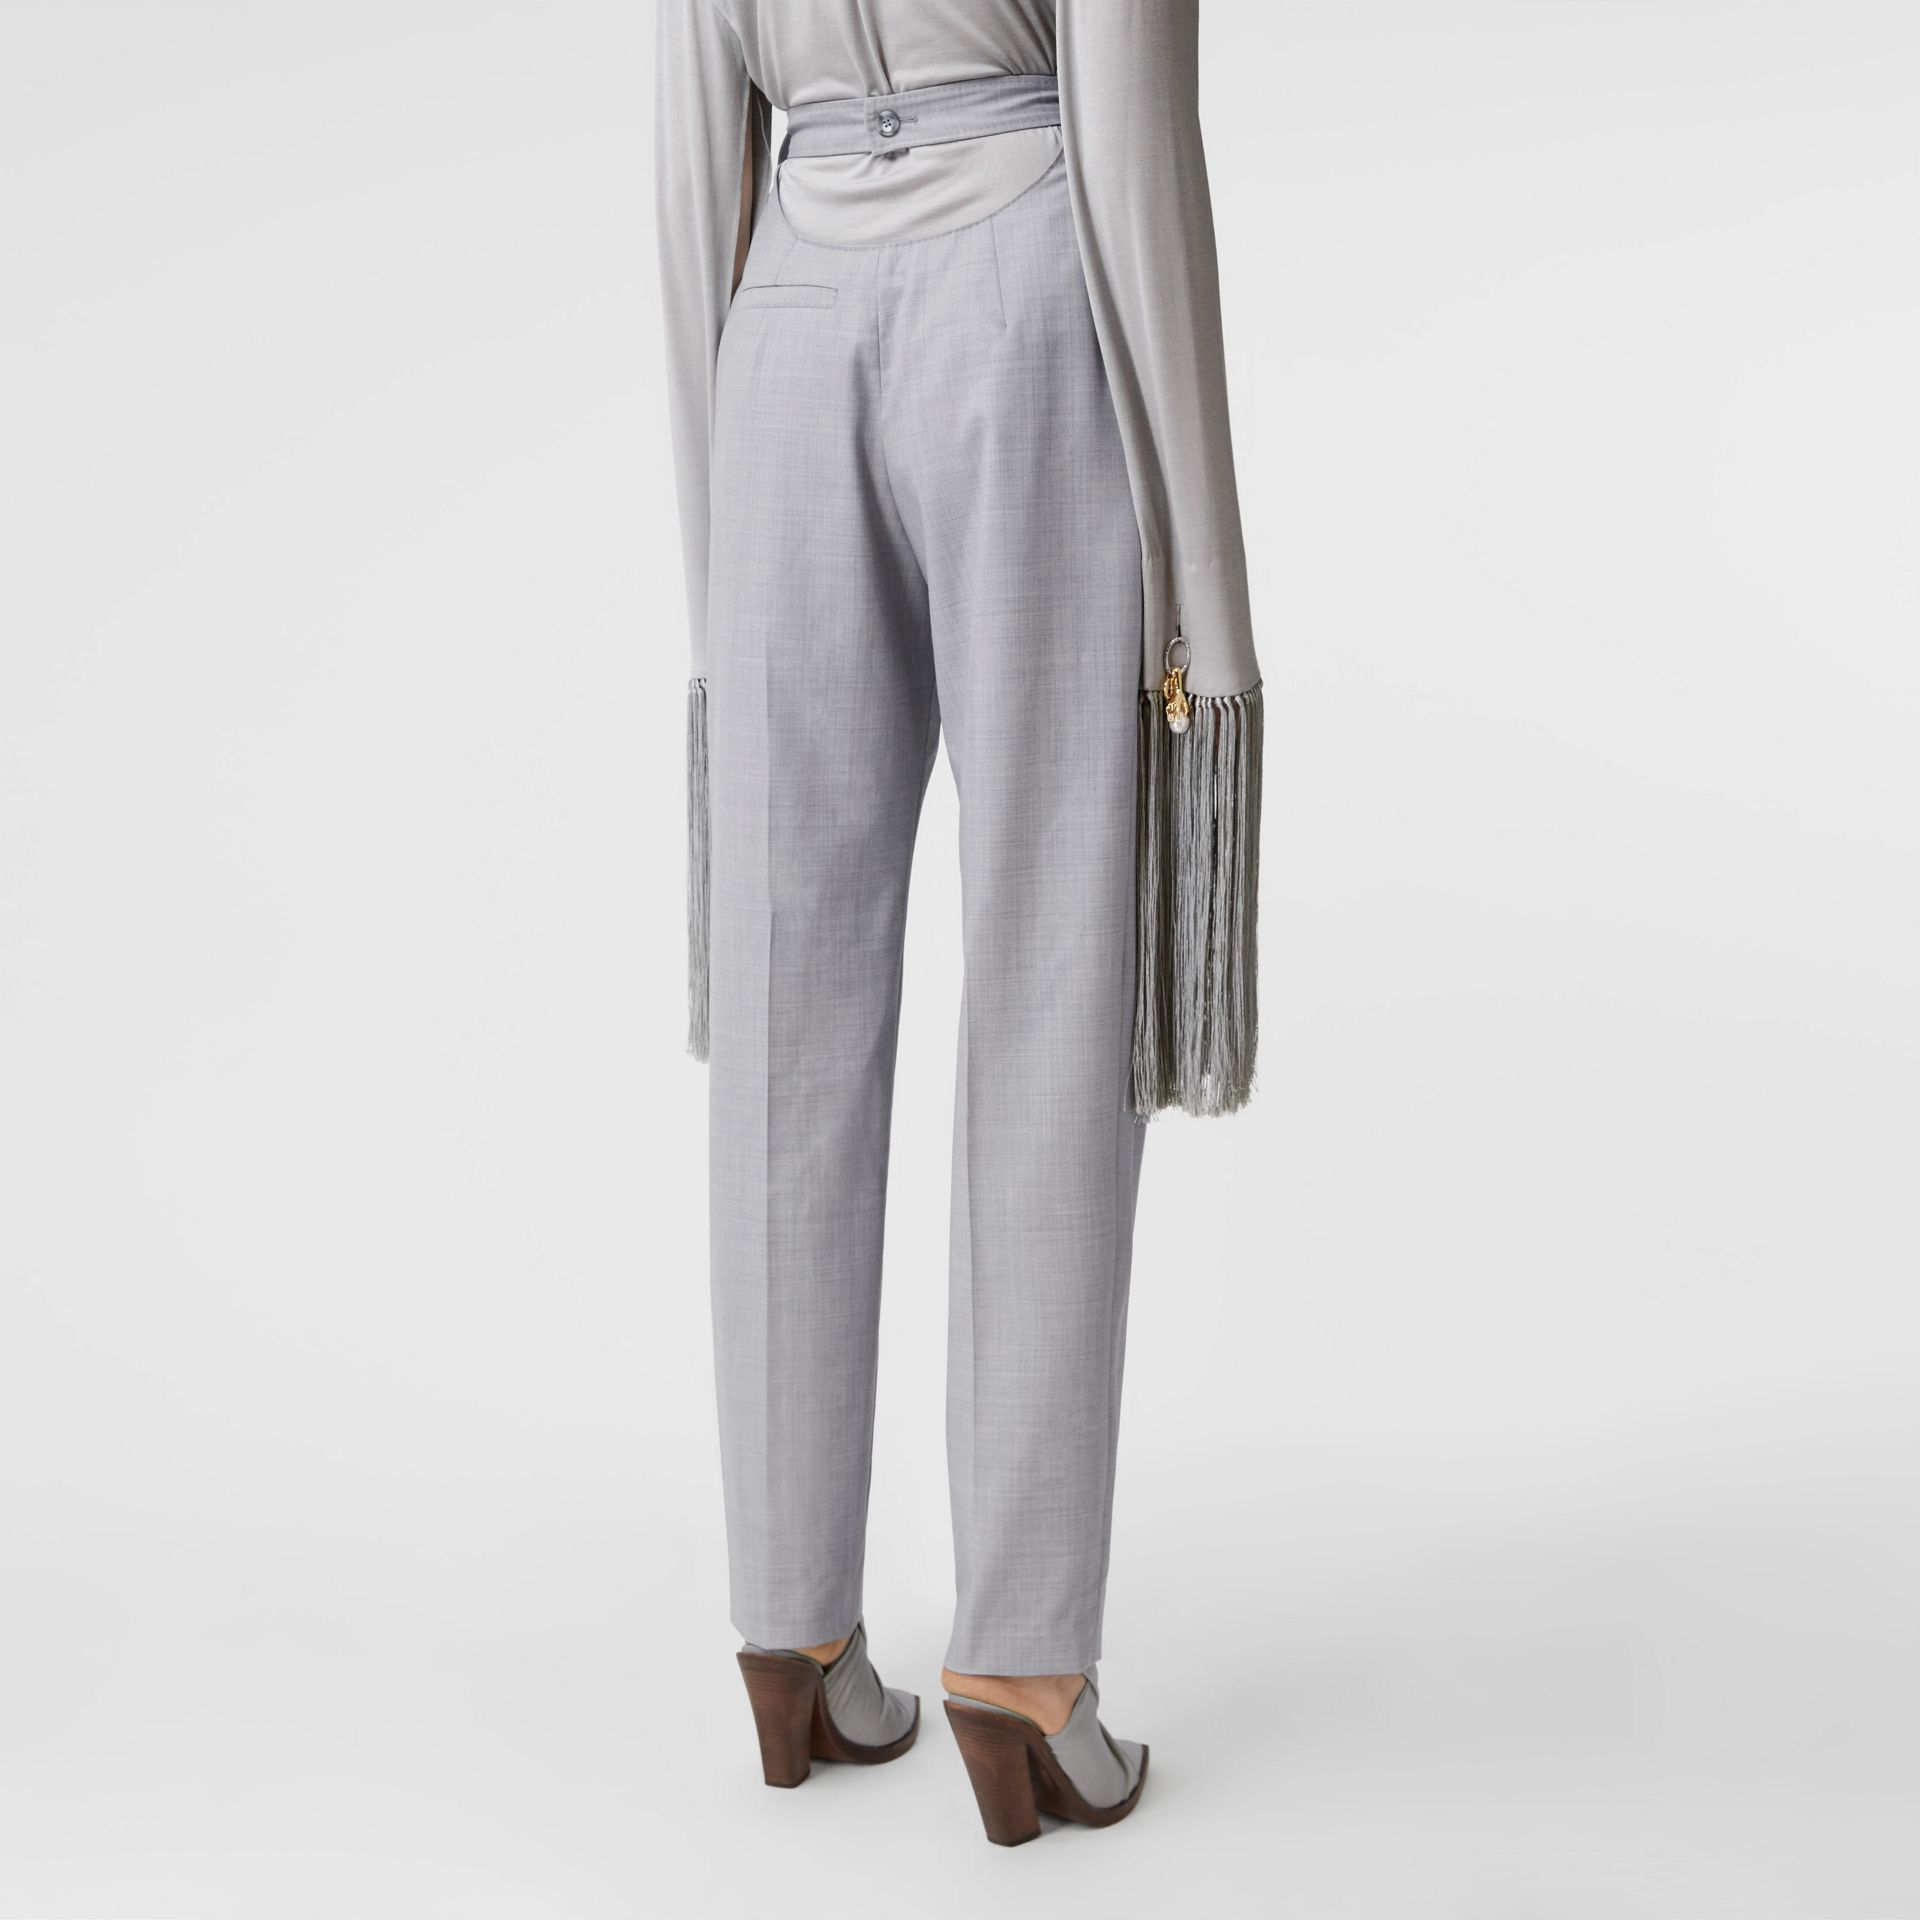 Cut-out Detail Wool Jersey Tailored Trousers in Cloud Grey - Women | Burberry Canada - gallery image 2